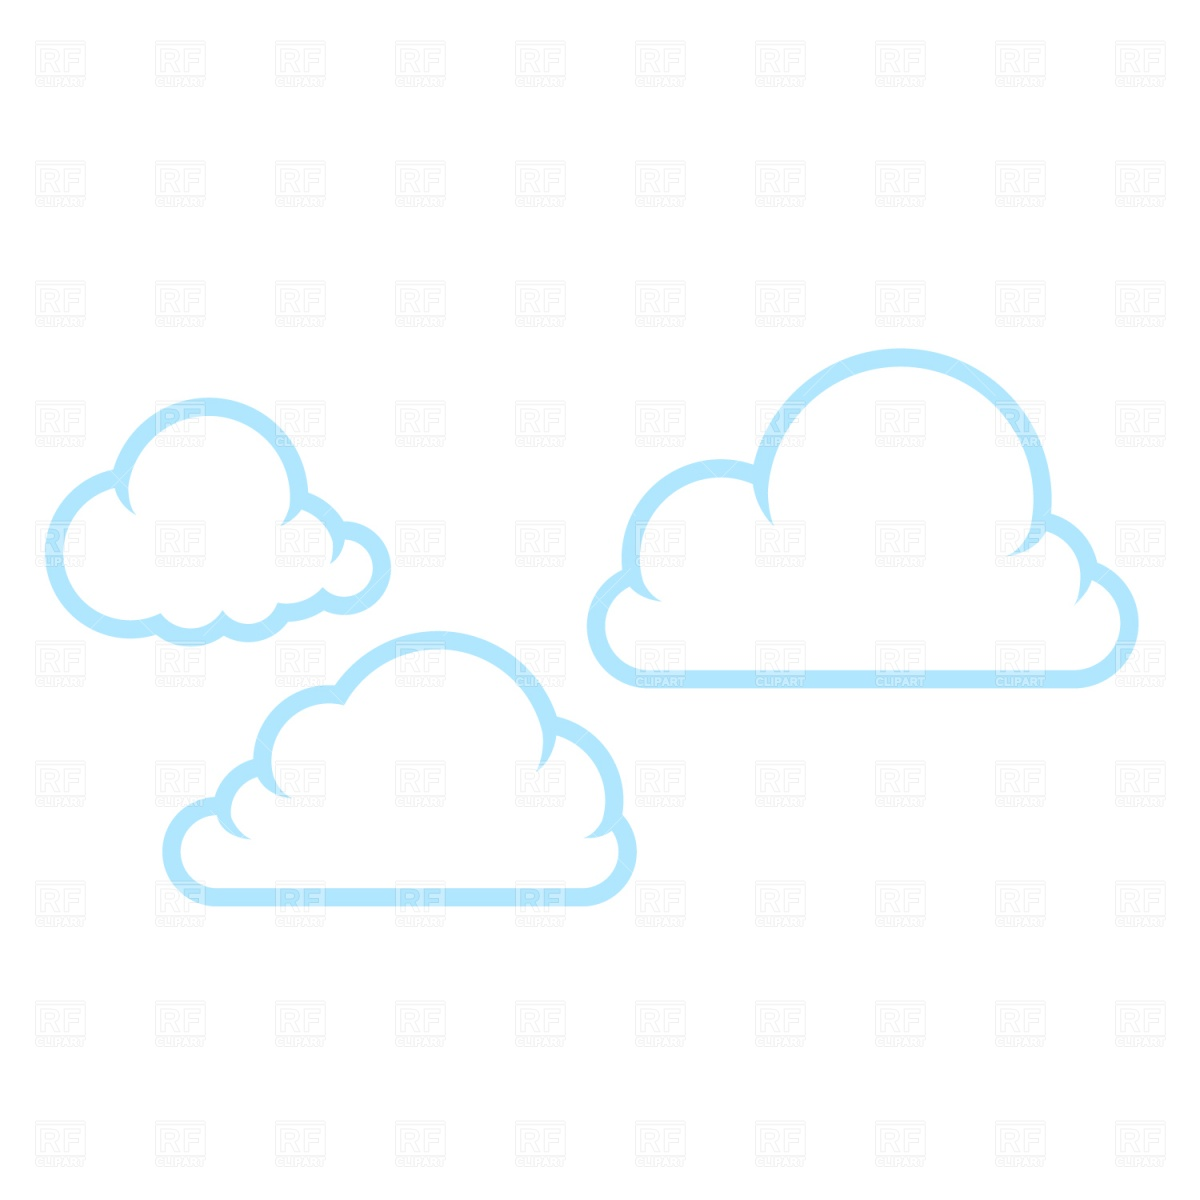 14 Free Vector Cloud Graphics Images